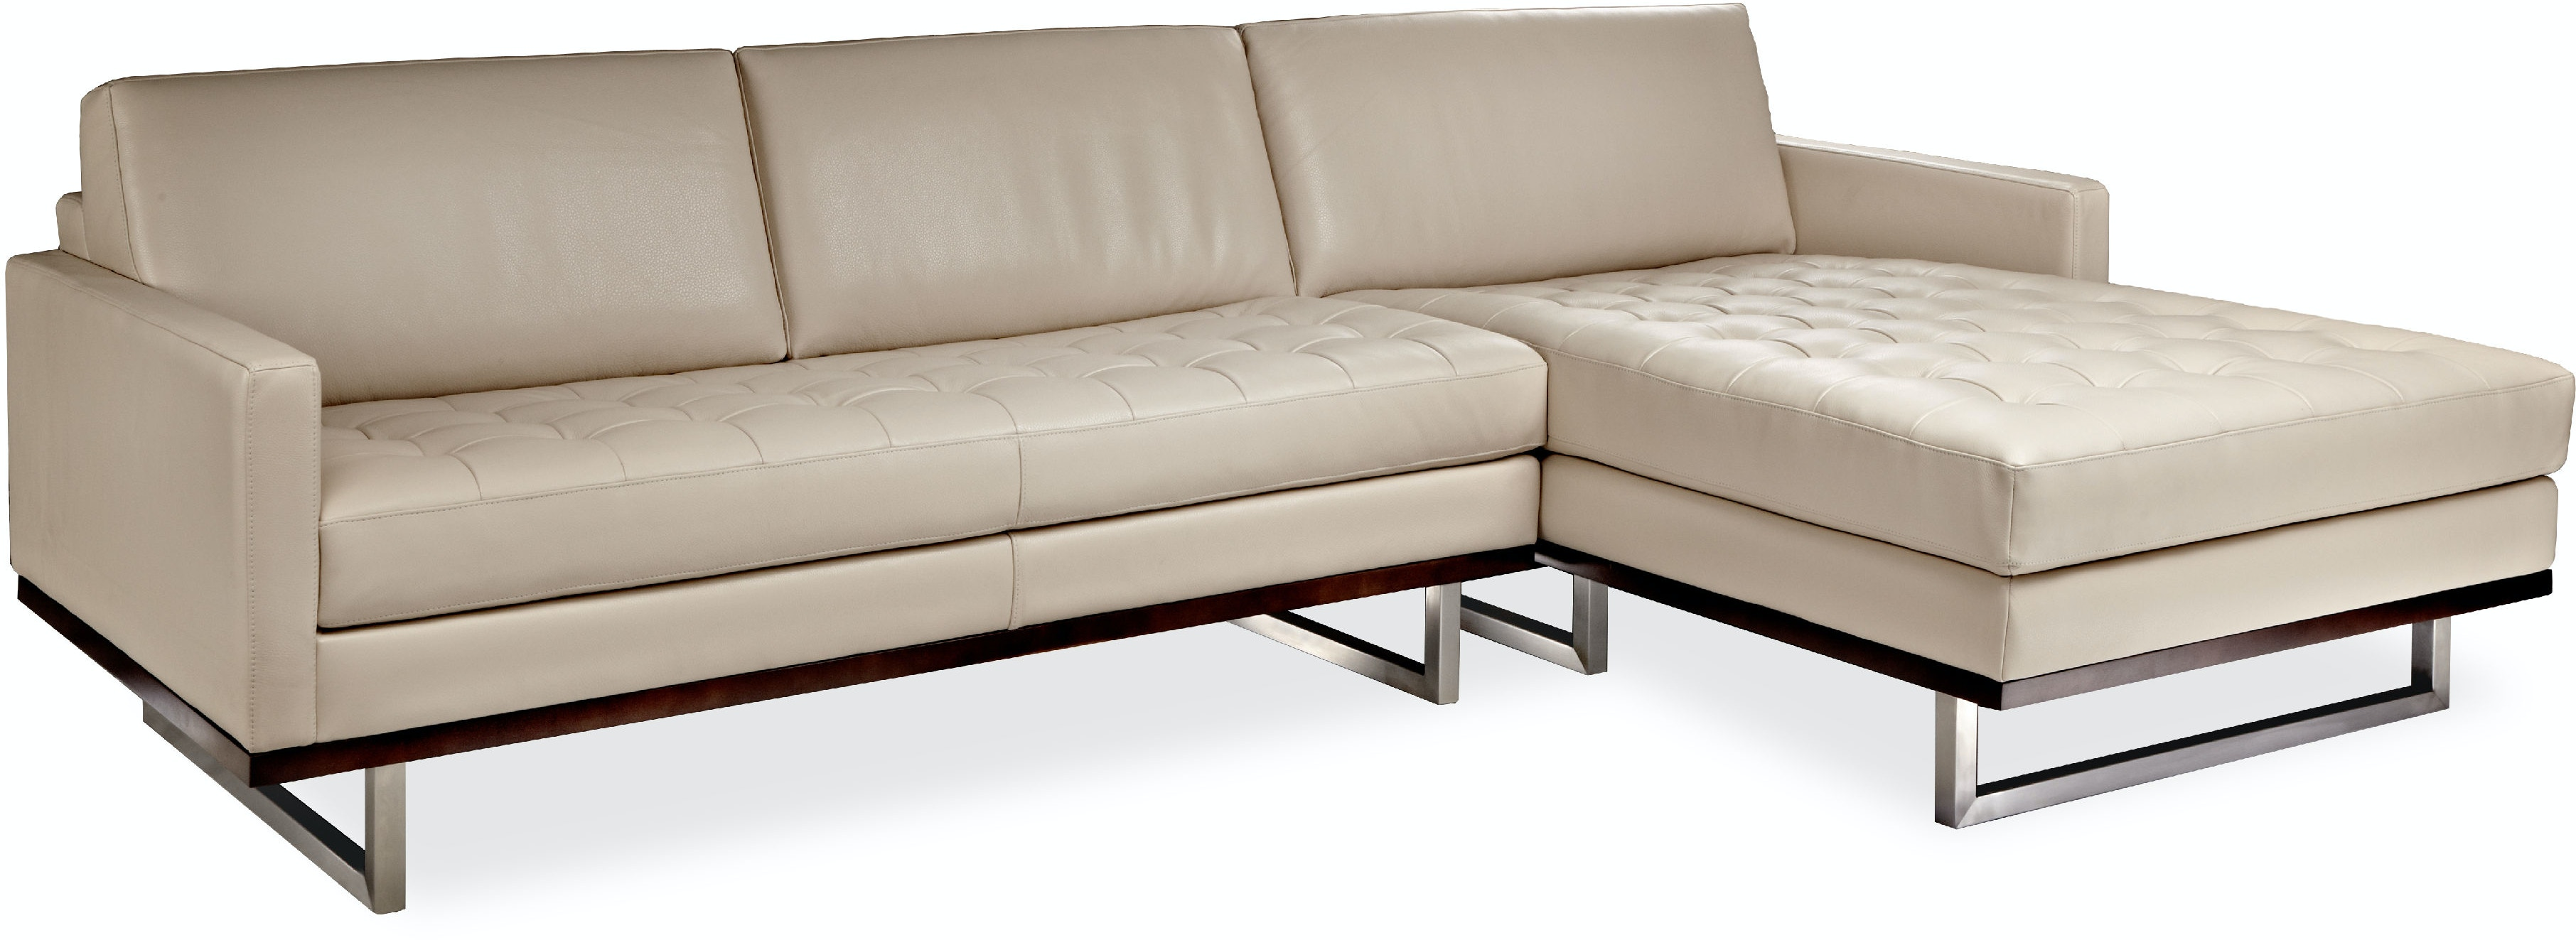 American Leather Living Room Tristan Sectional Malouf